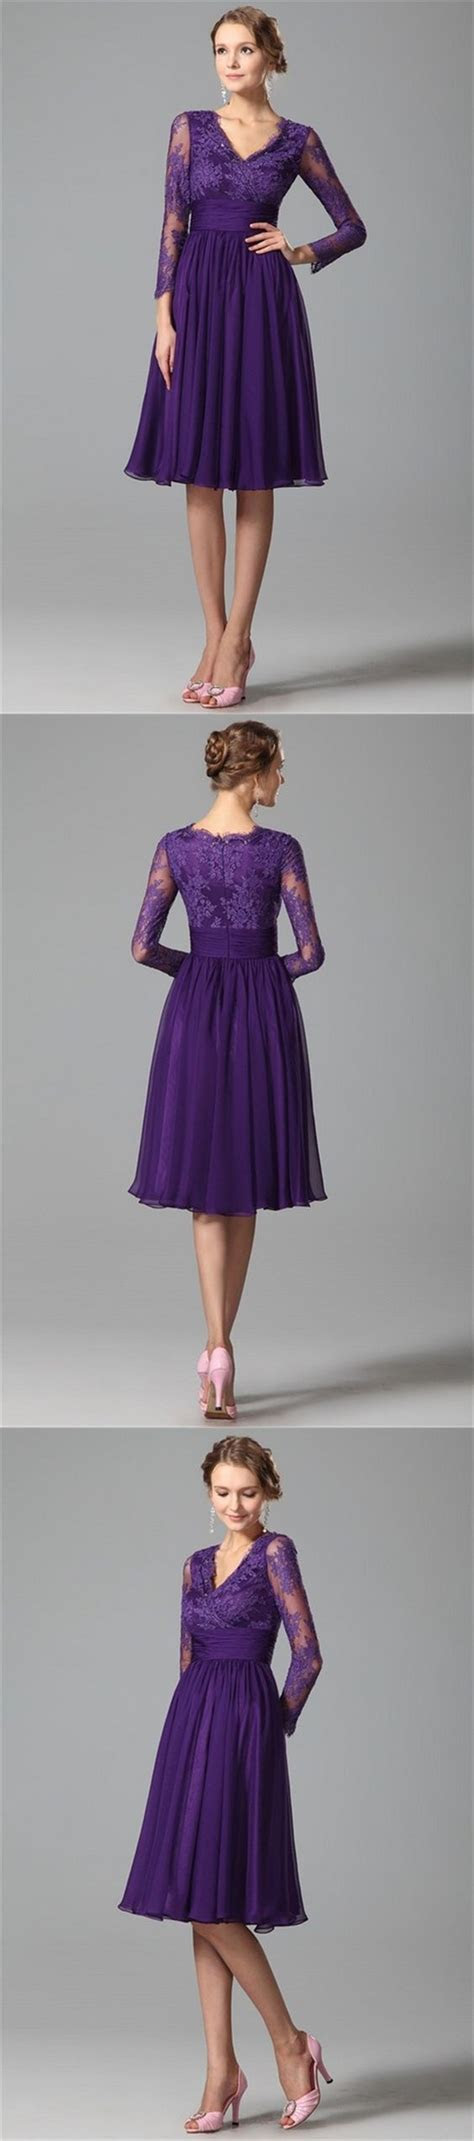 Purple bridesmaid dresses, Dress wedding guests and Knee